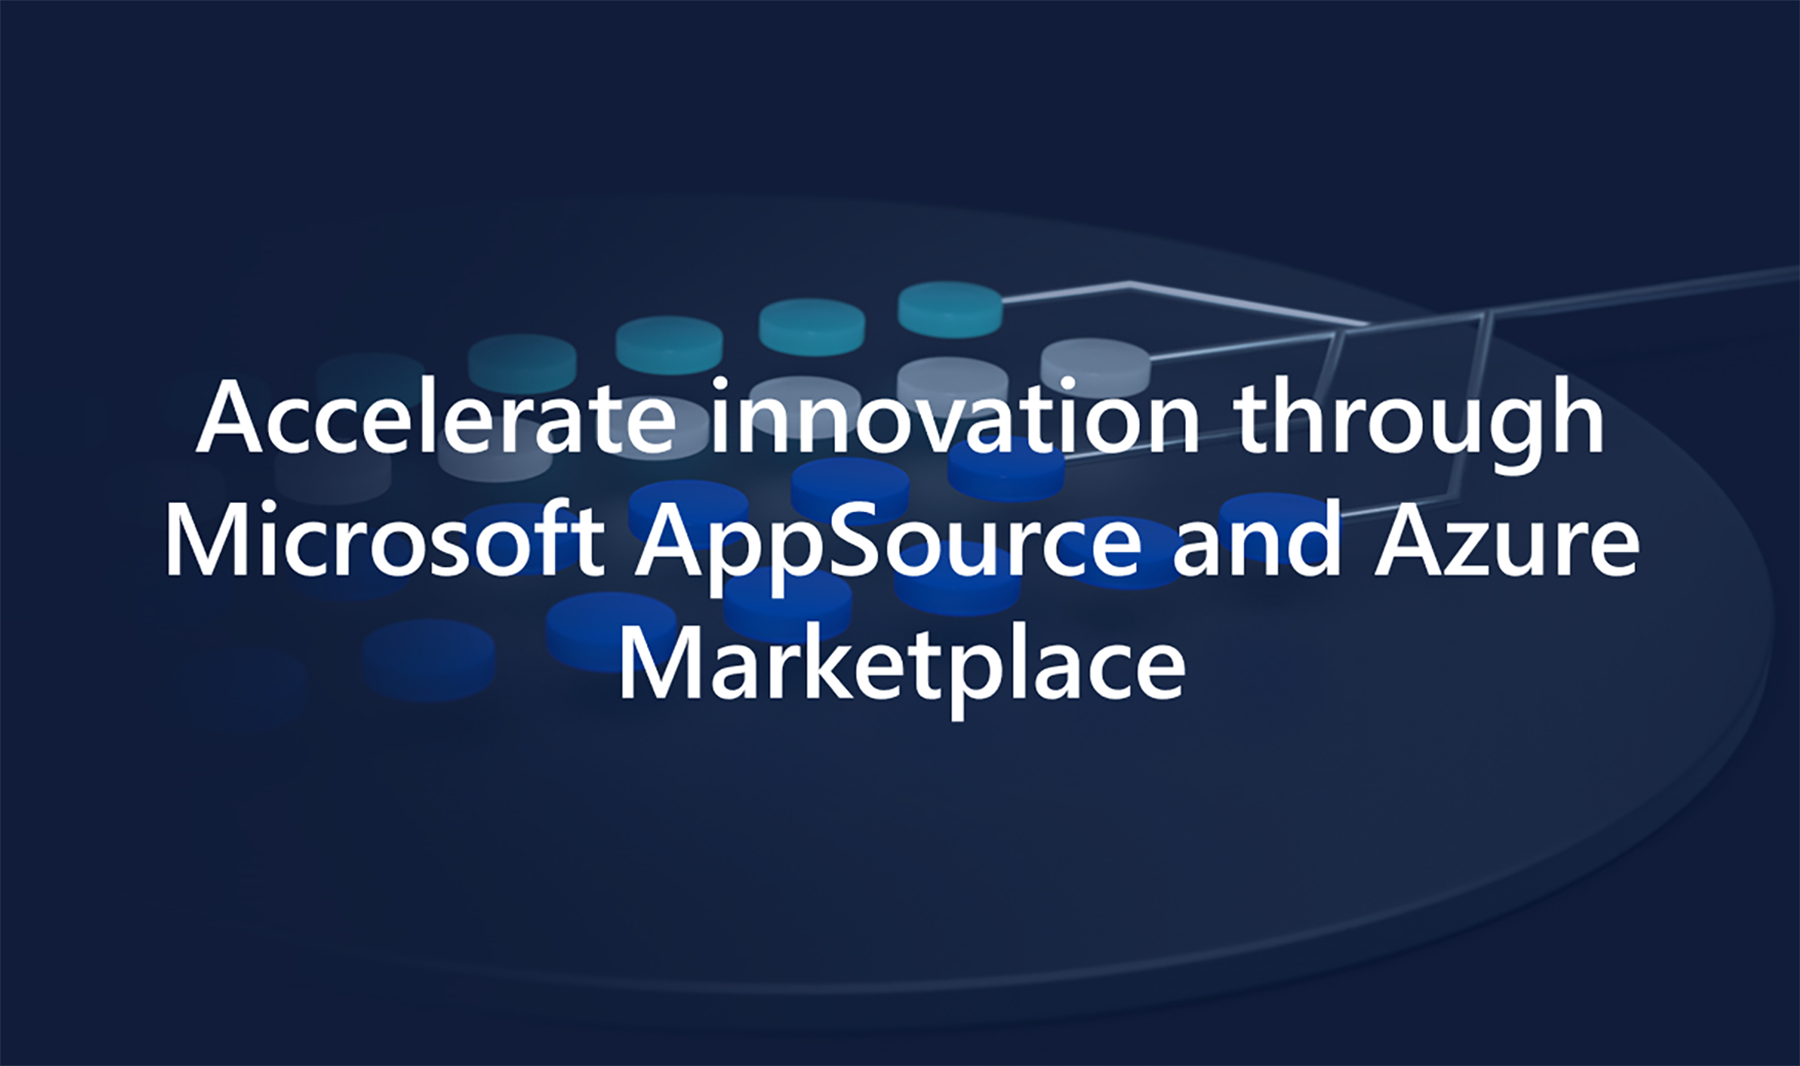 Accelerate innovation through Microsoft AppSource and Azure Marketplace